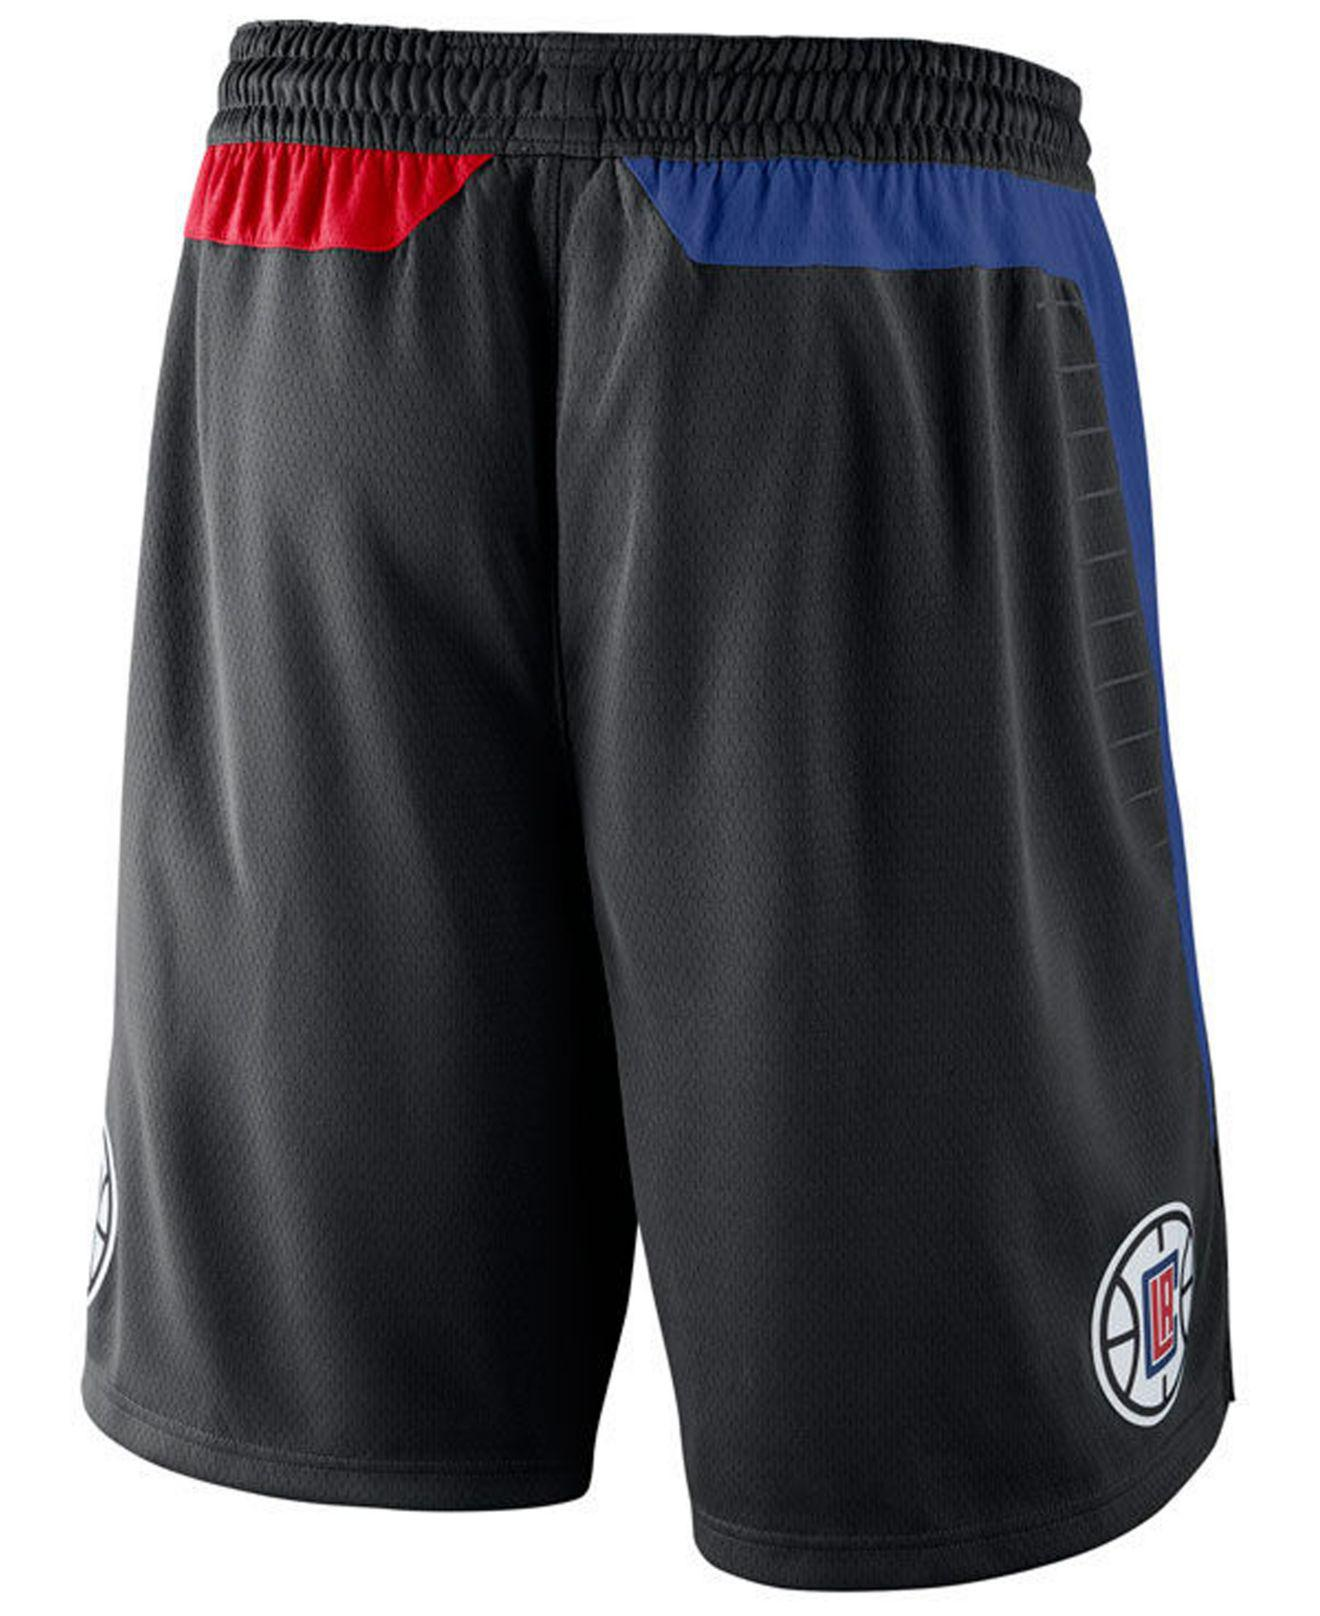 Lyst - Nike Los Angeles Clippers Statement Swingman Shorts in Black for Men a16ffdb0b